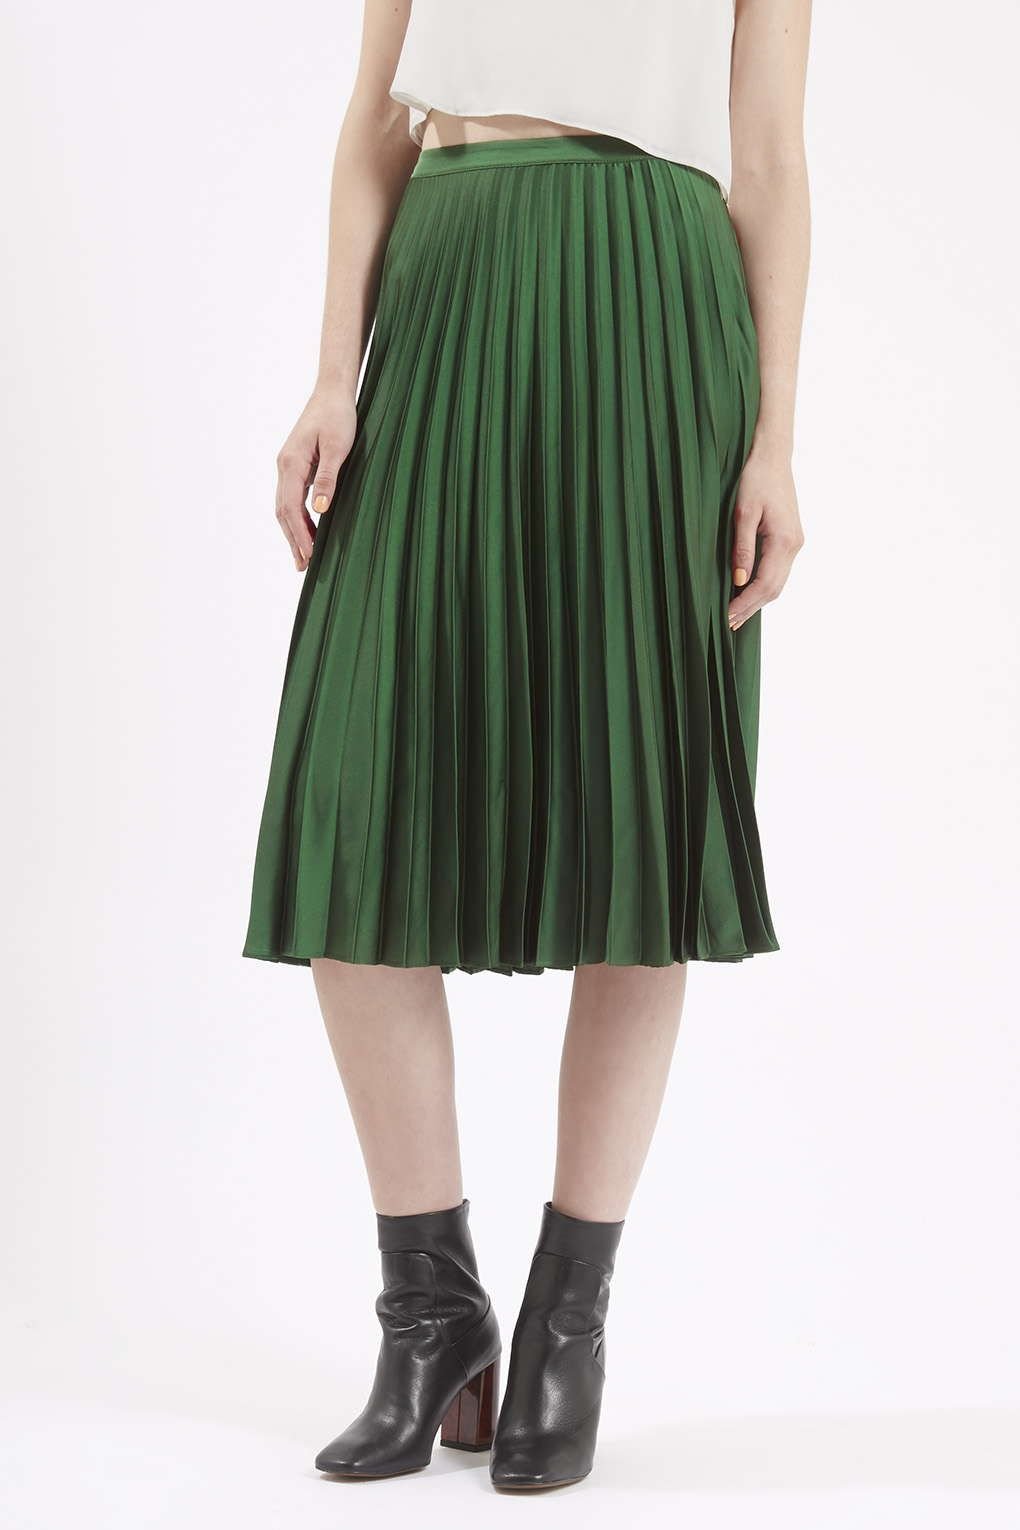 Green Pleated Midi Skirt - Dress Ala